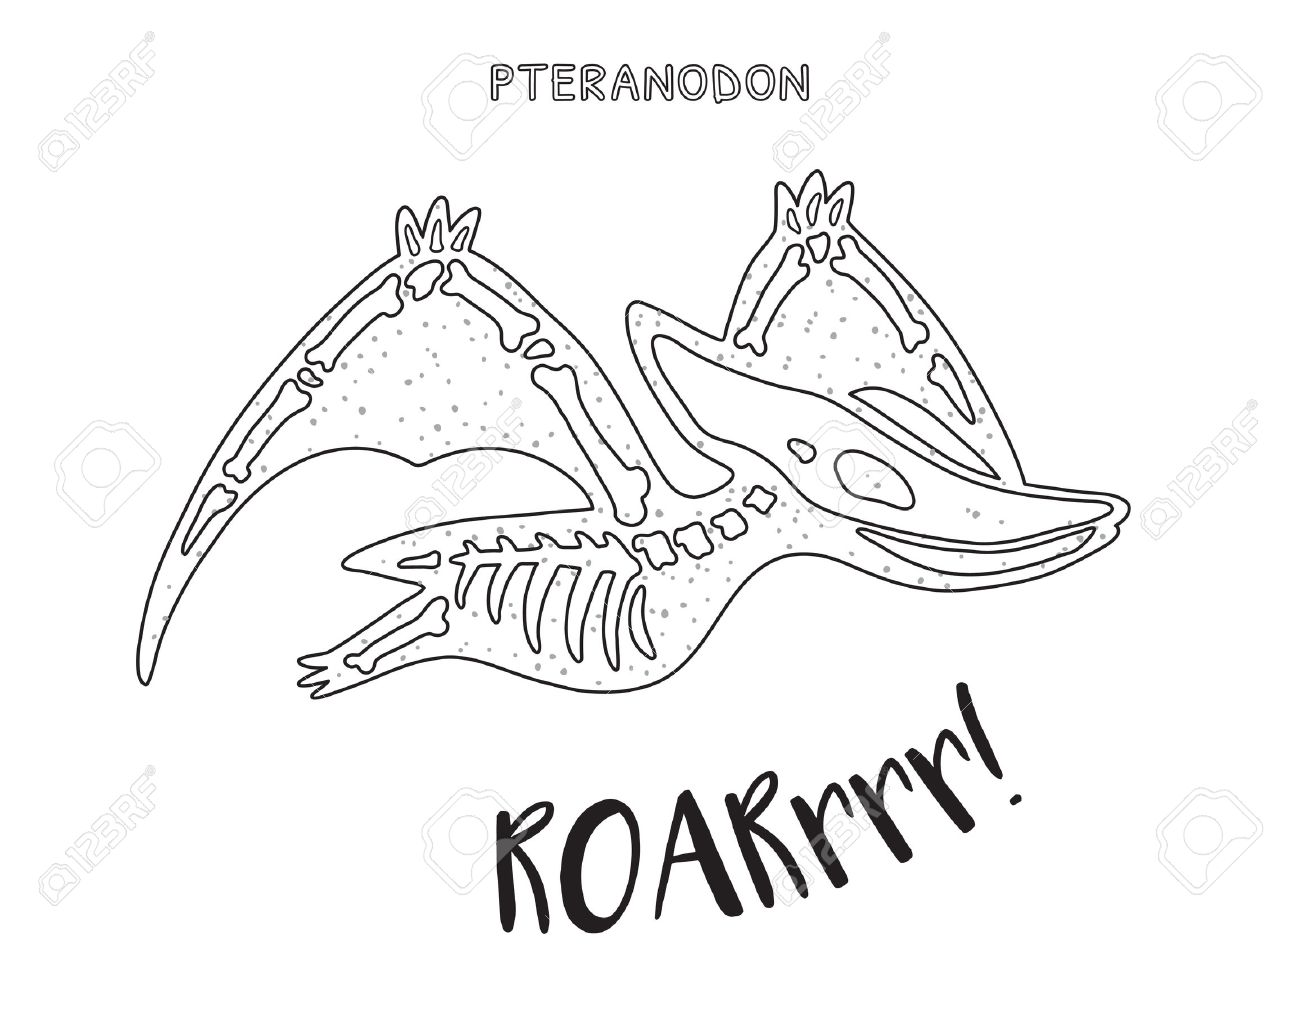 Pteranodon Skeleton Outline Drawing. Fossil Of A Pteranodon Dinosaur ...